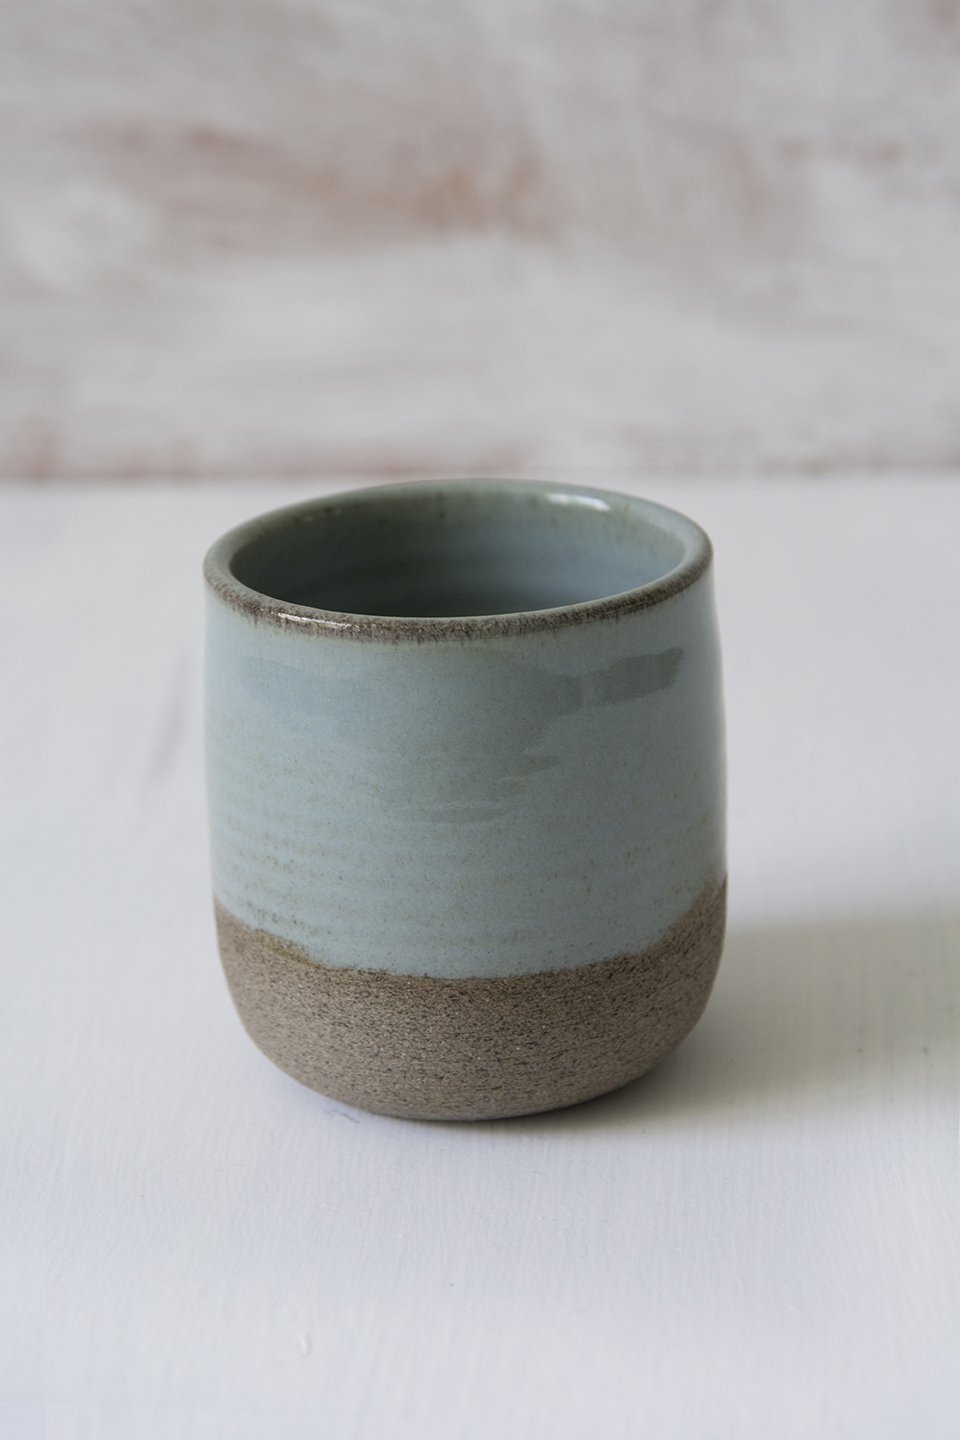 Stoneware Handmade Ceramic Espresso Cups Mad About Pottery